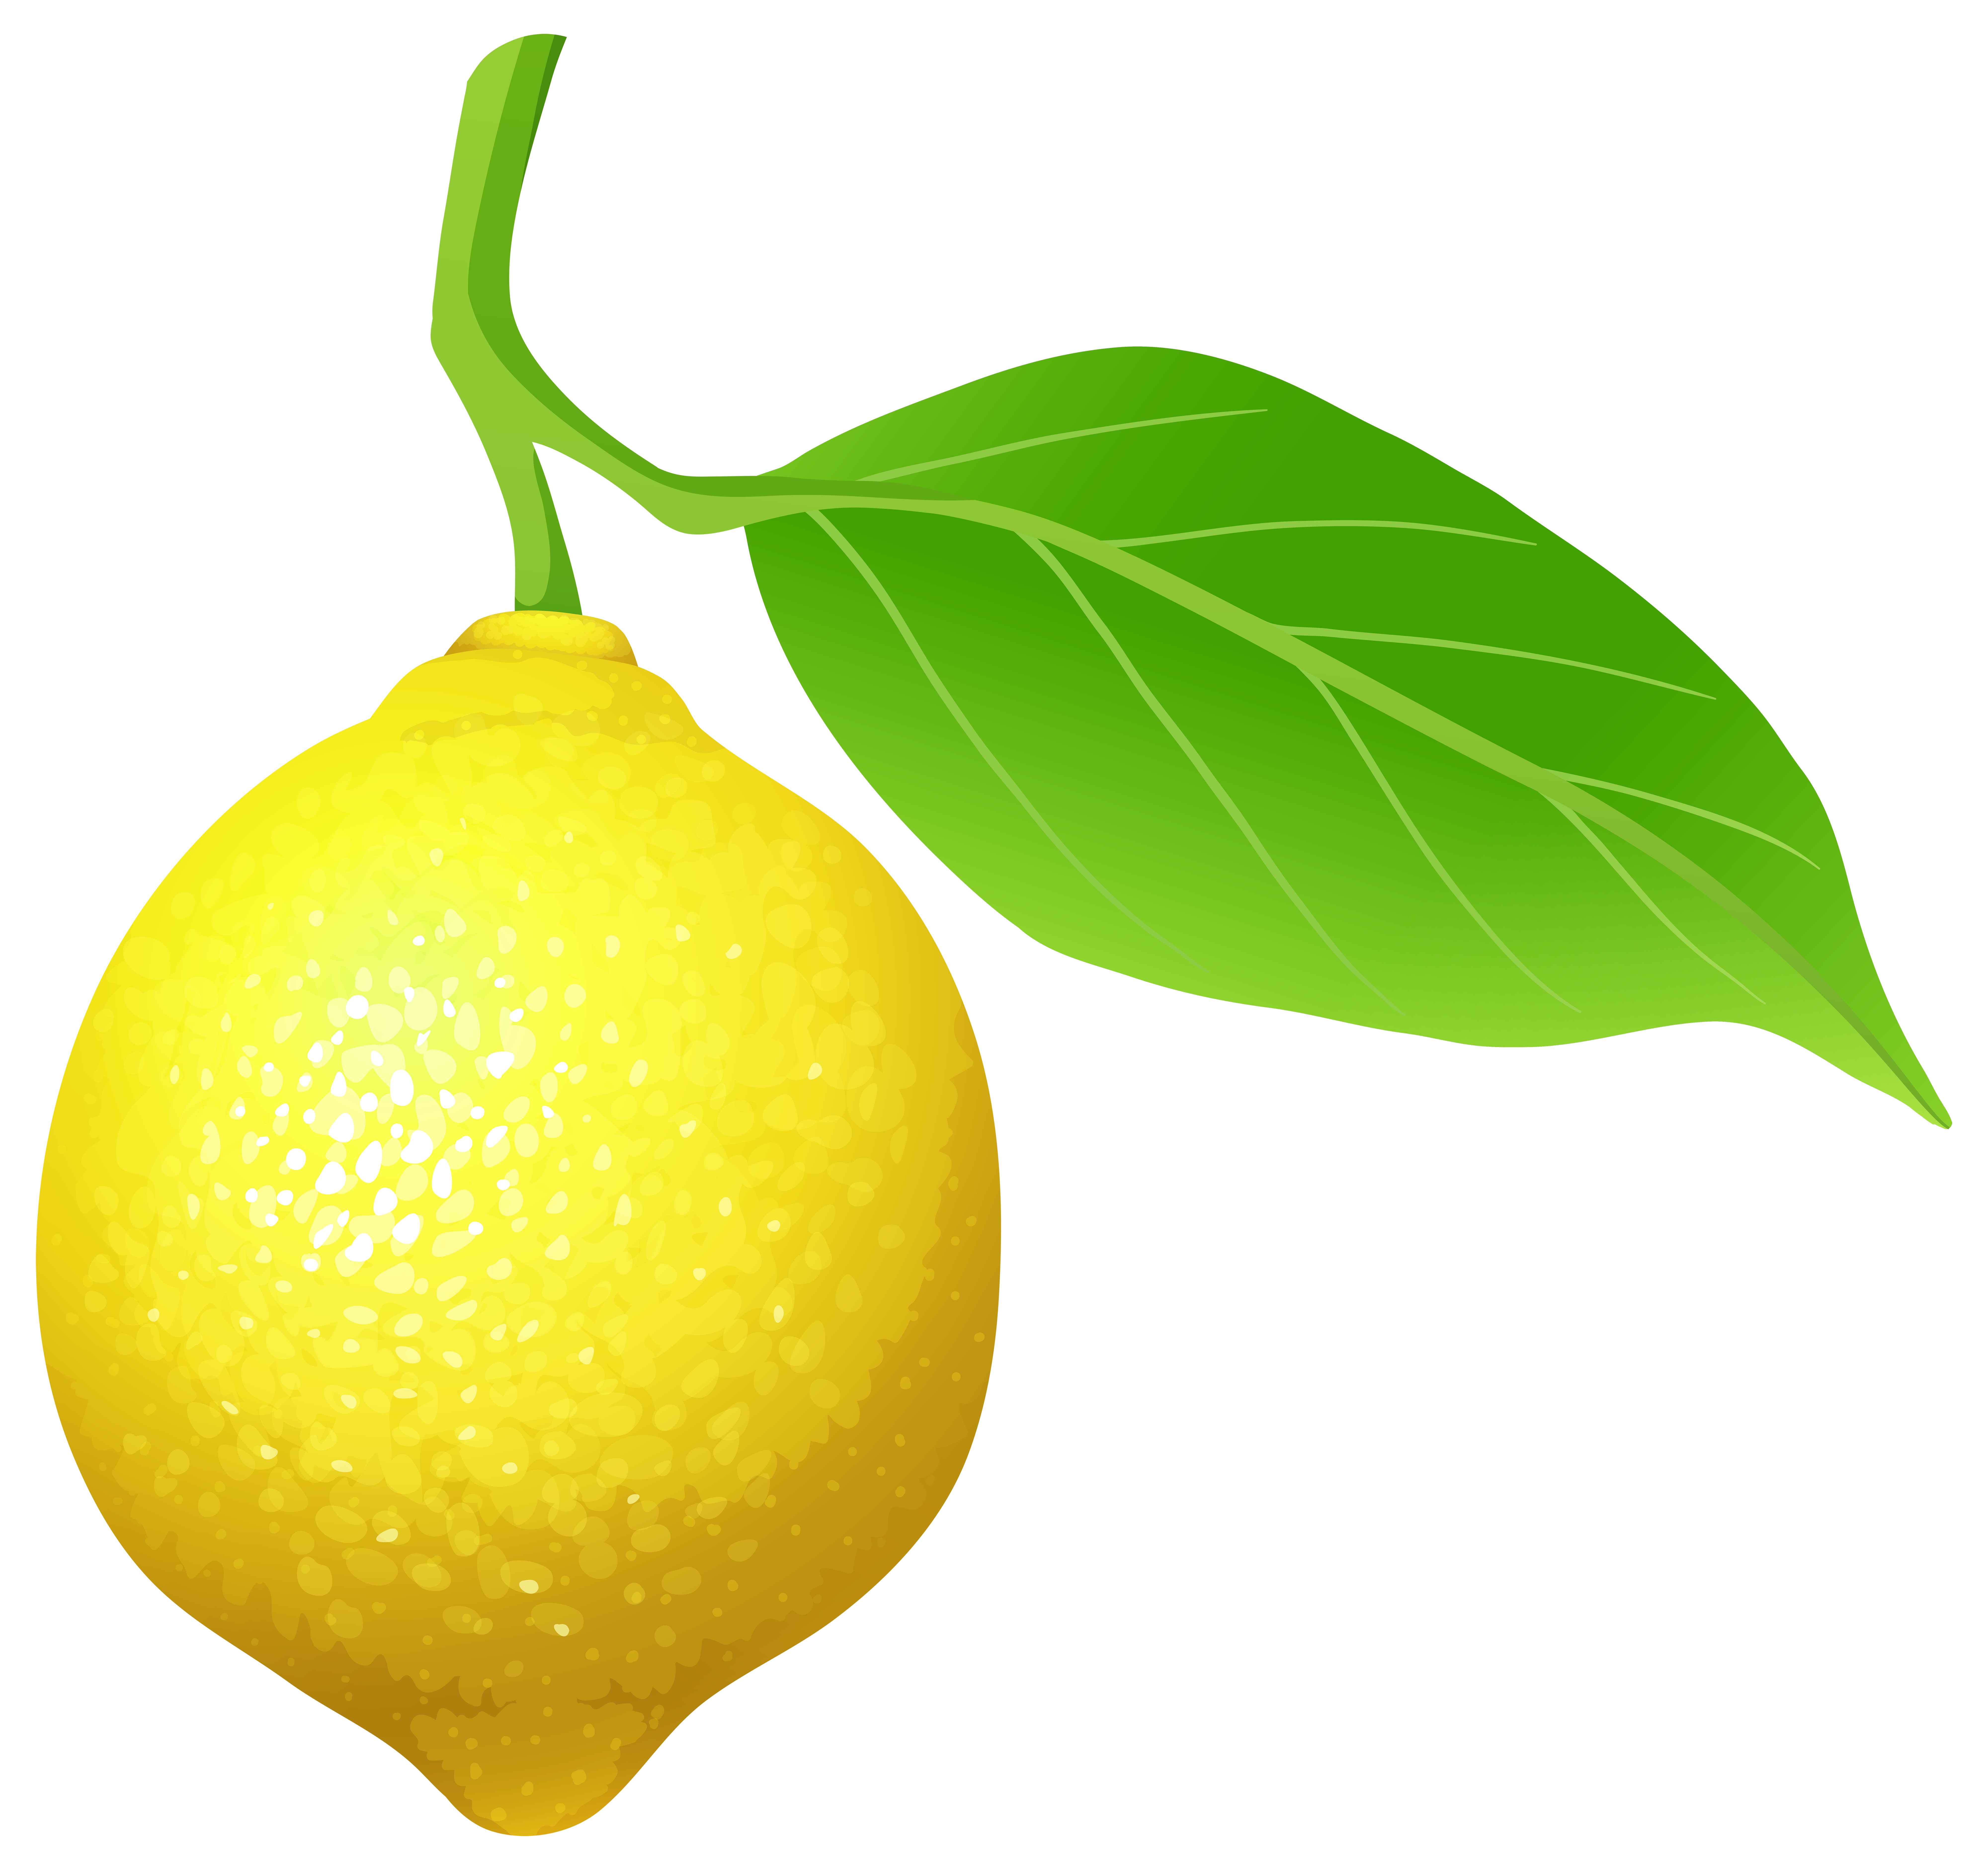 Fruit clipart lemon. Printable pencil and in